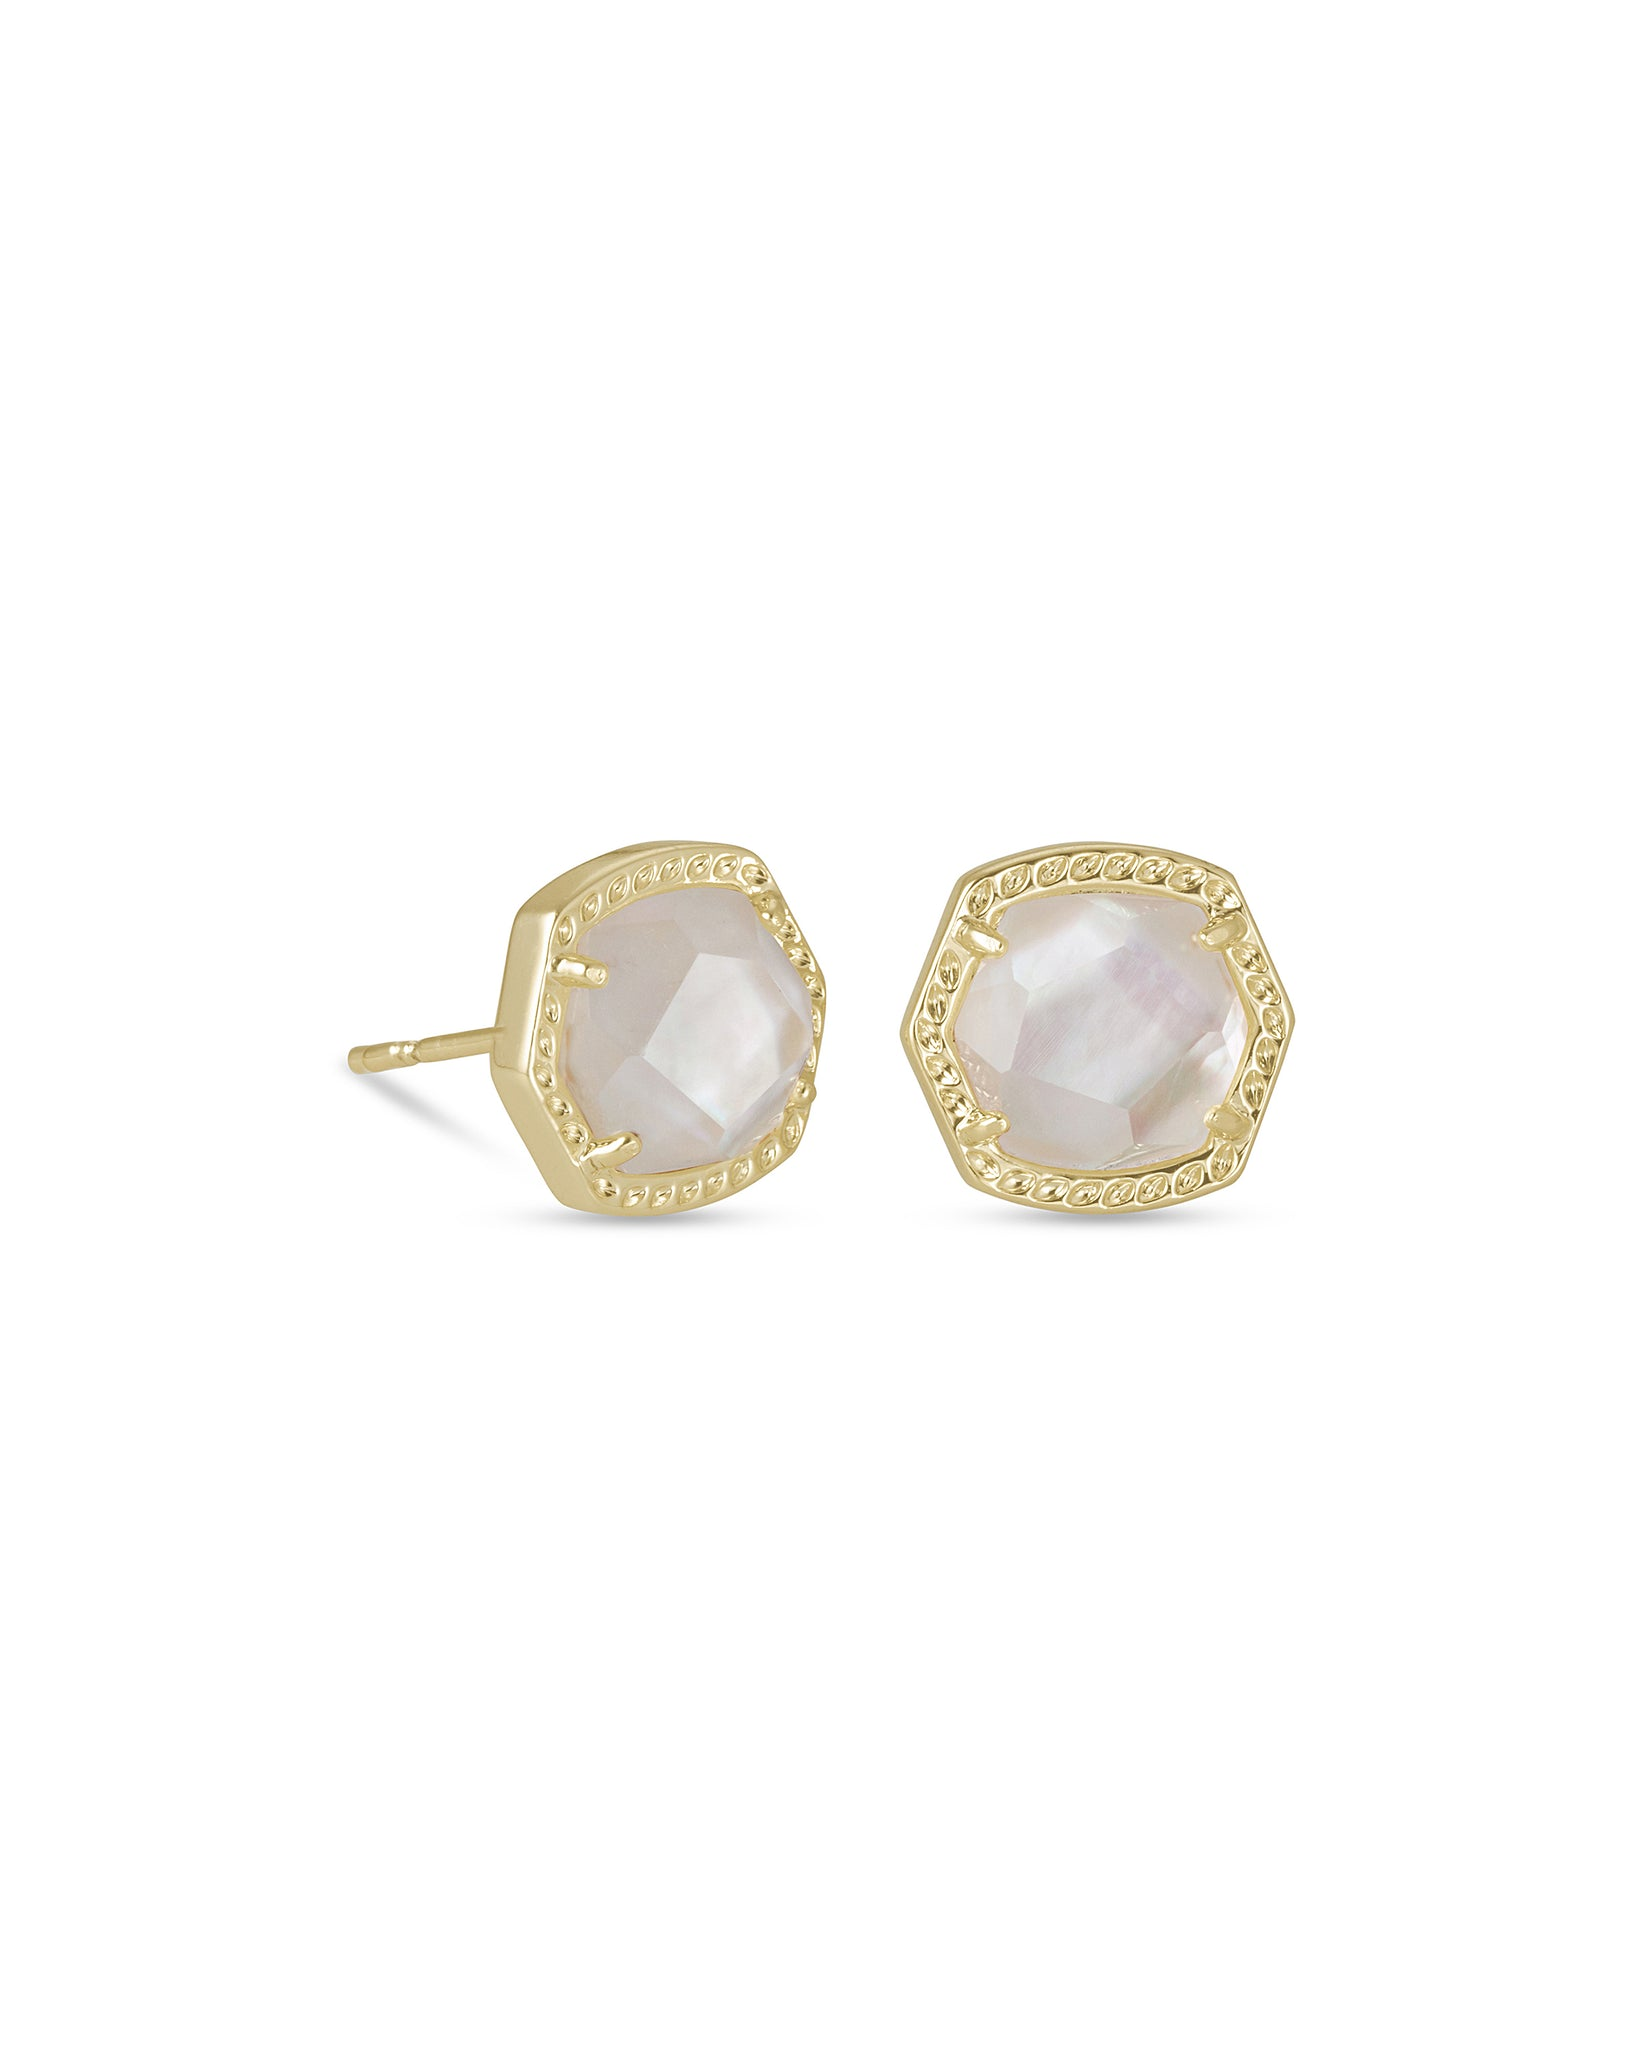 Kendra Scott Davie Stud Earrings in Ivory Pearl